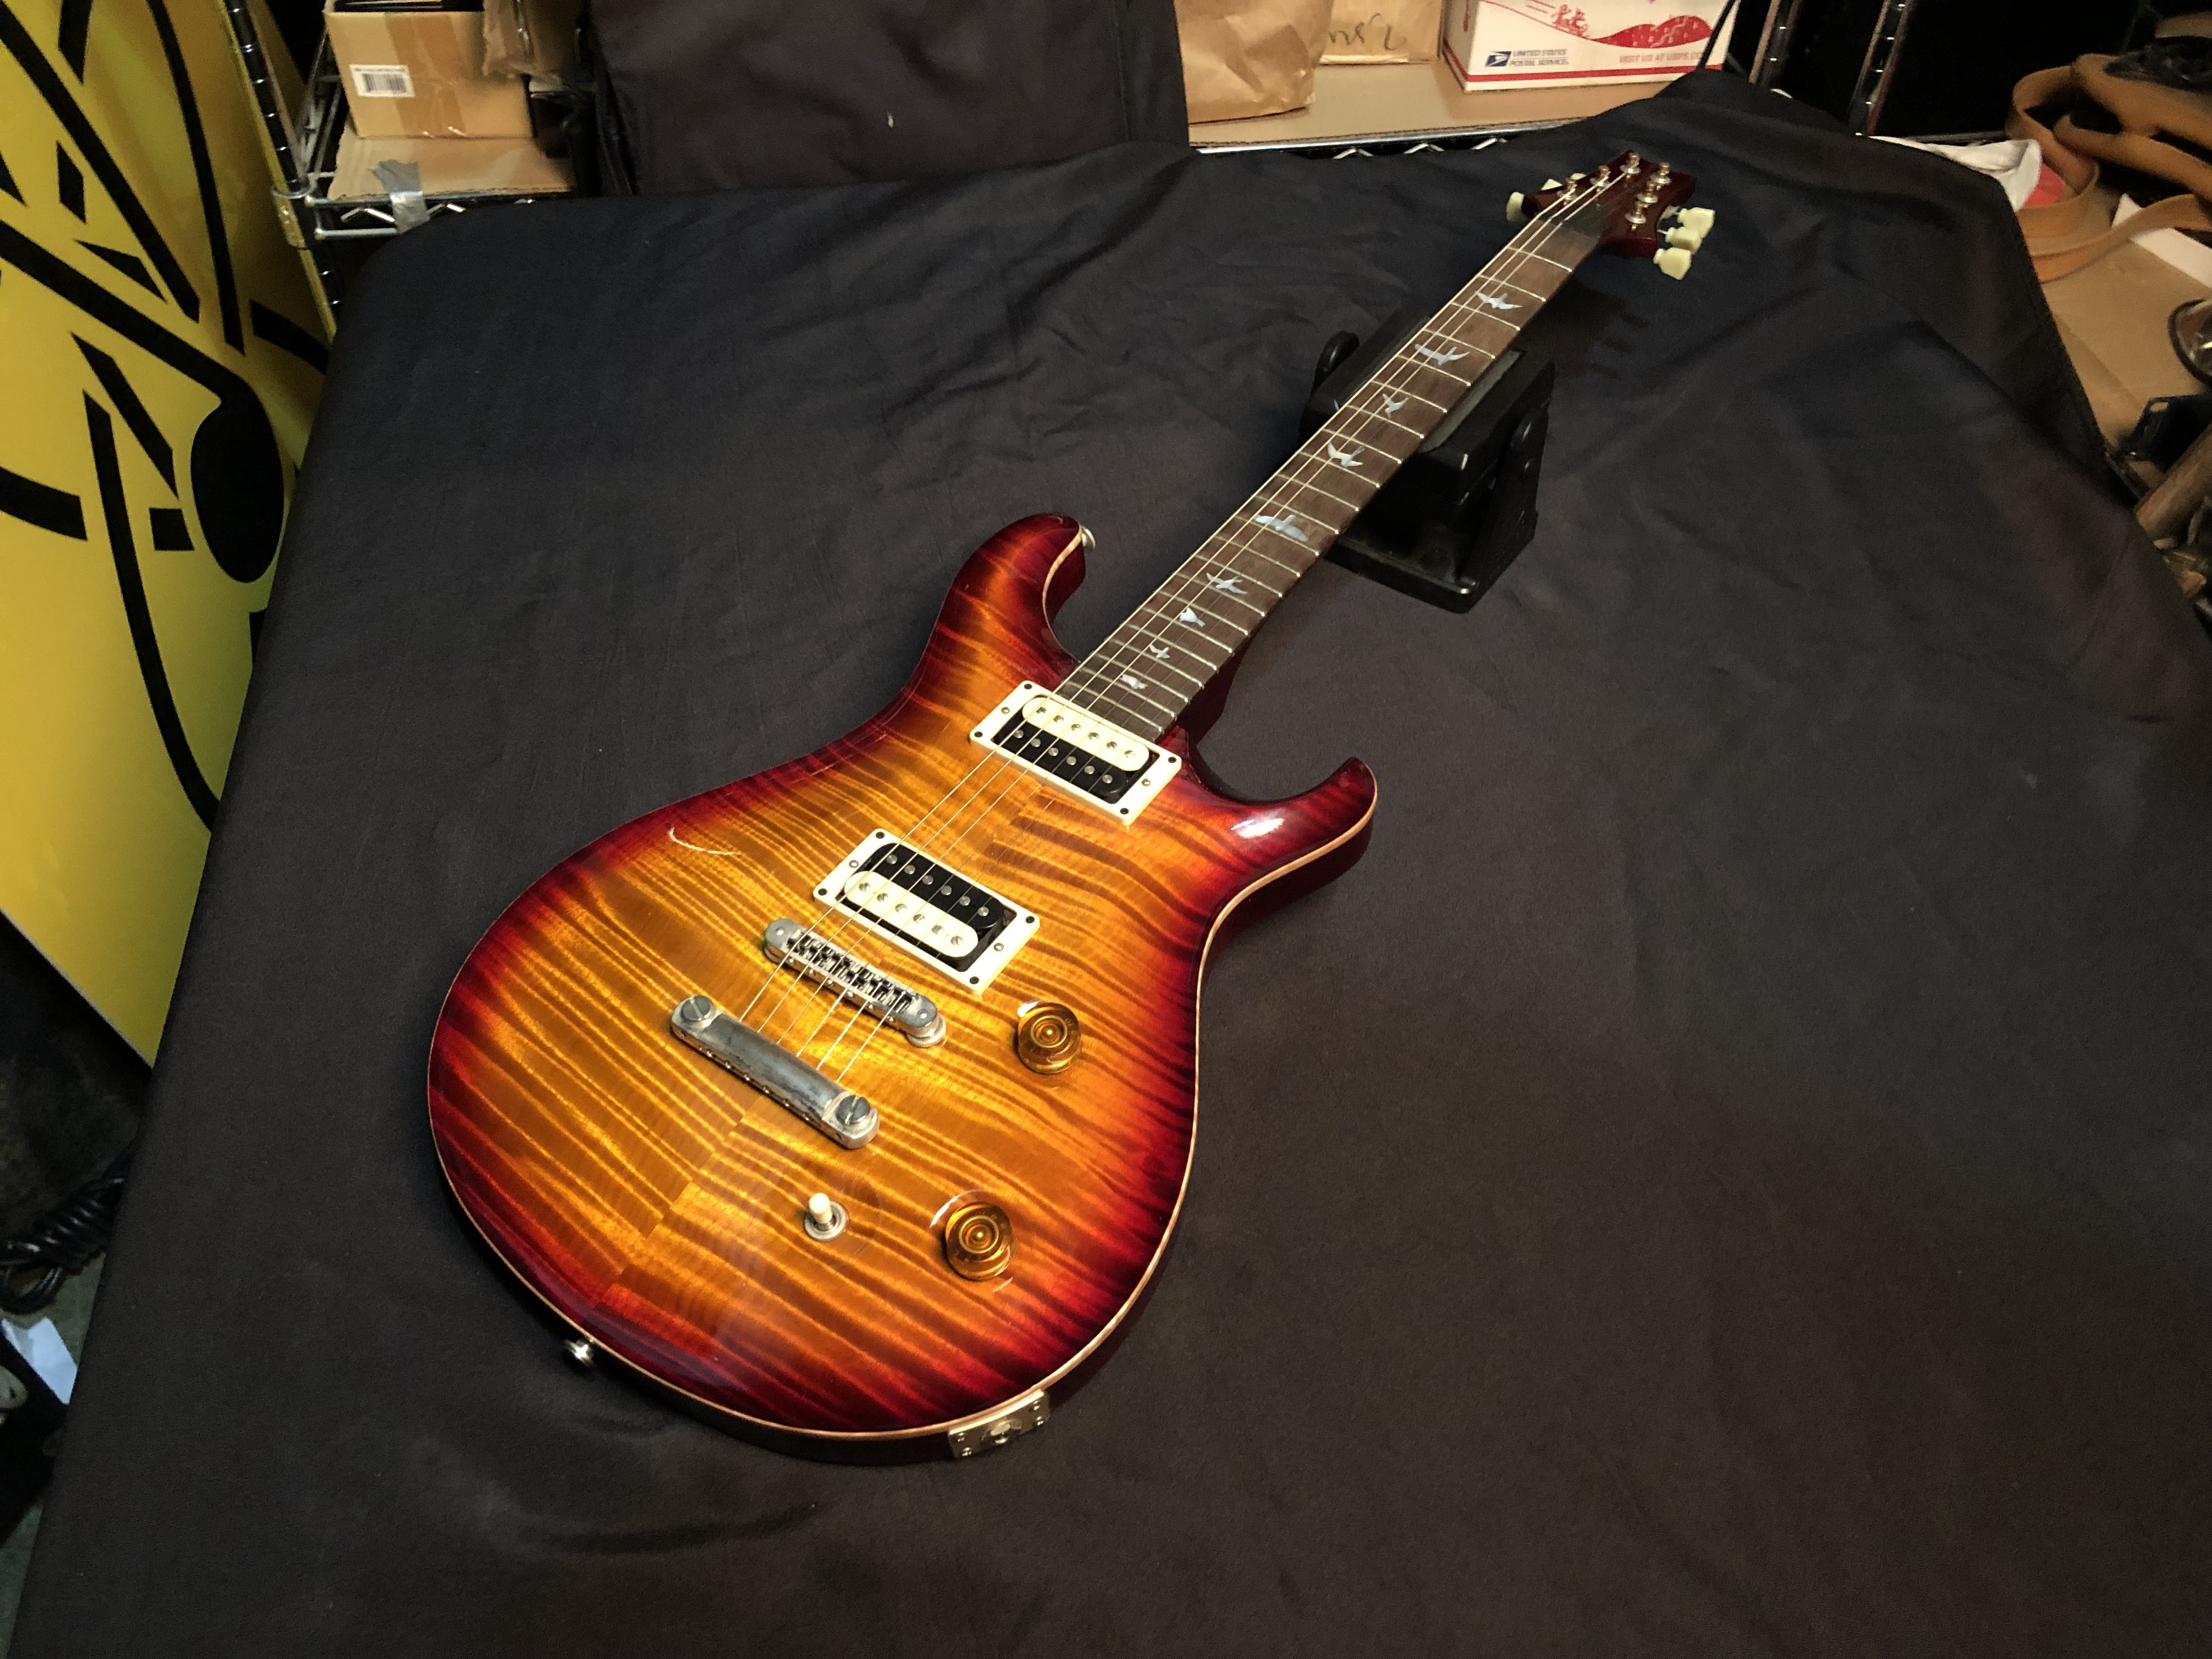 2009 PAUL REED SMITH PRS - 25TH ANNIVERSARY CUSTOM 22  - ELECTRIC GUITAR